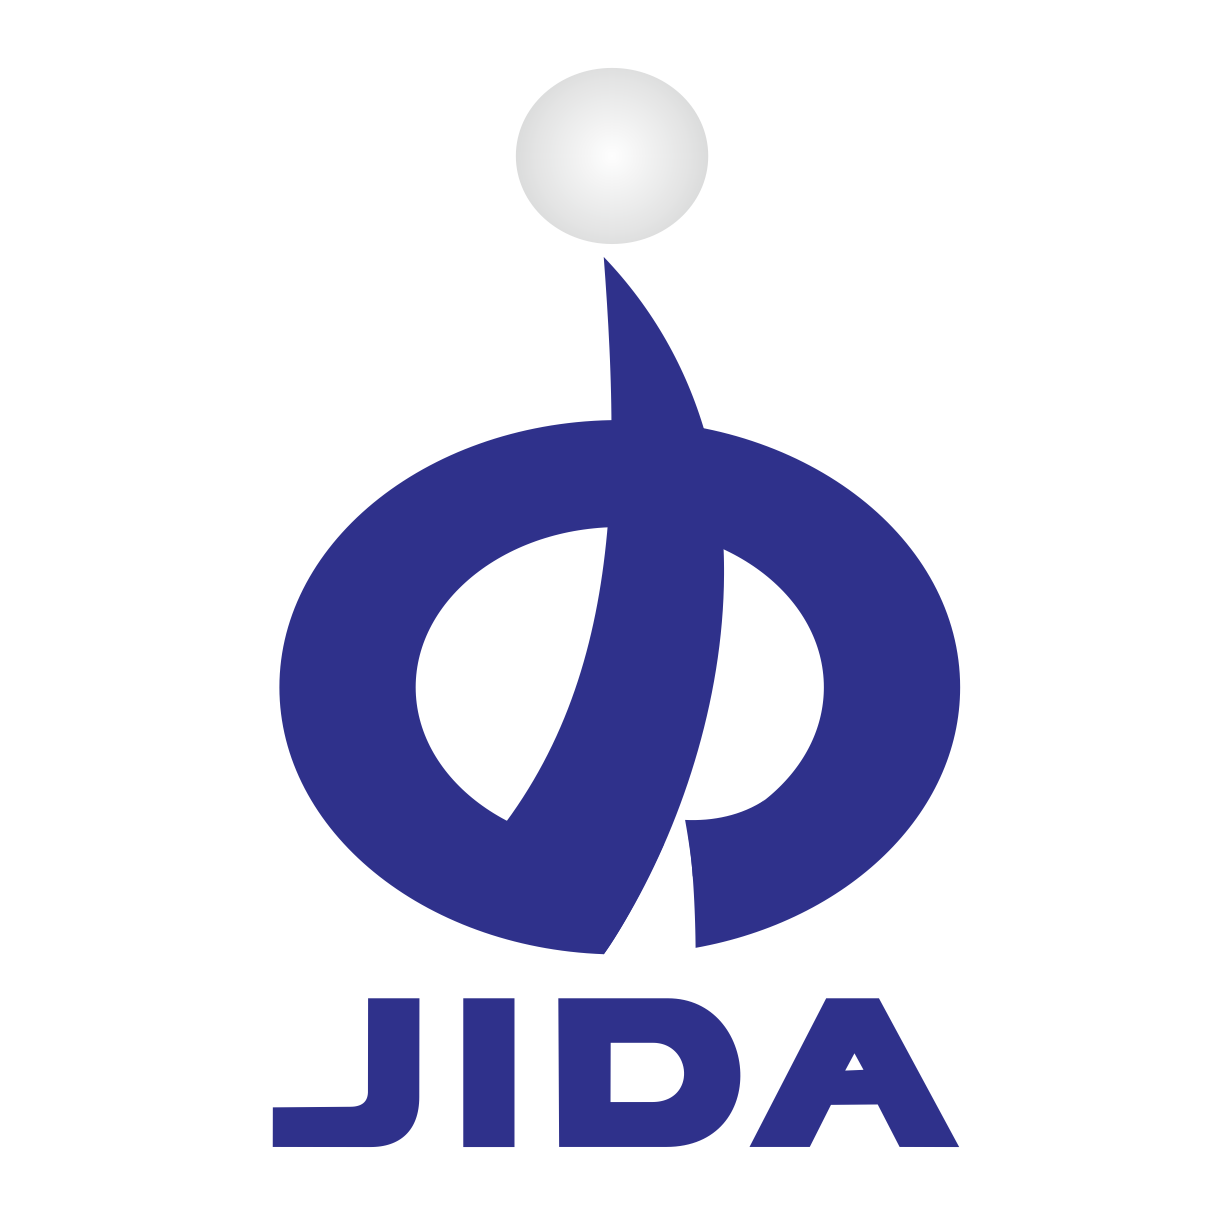 JIANGMEN JIDA STAINLESS STEEL PRODUCTS CO.,LTD